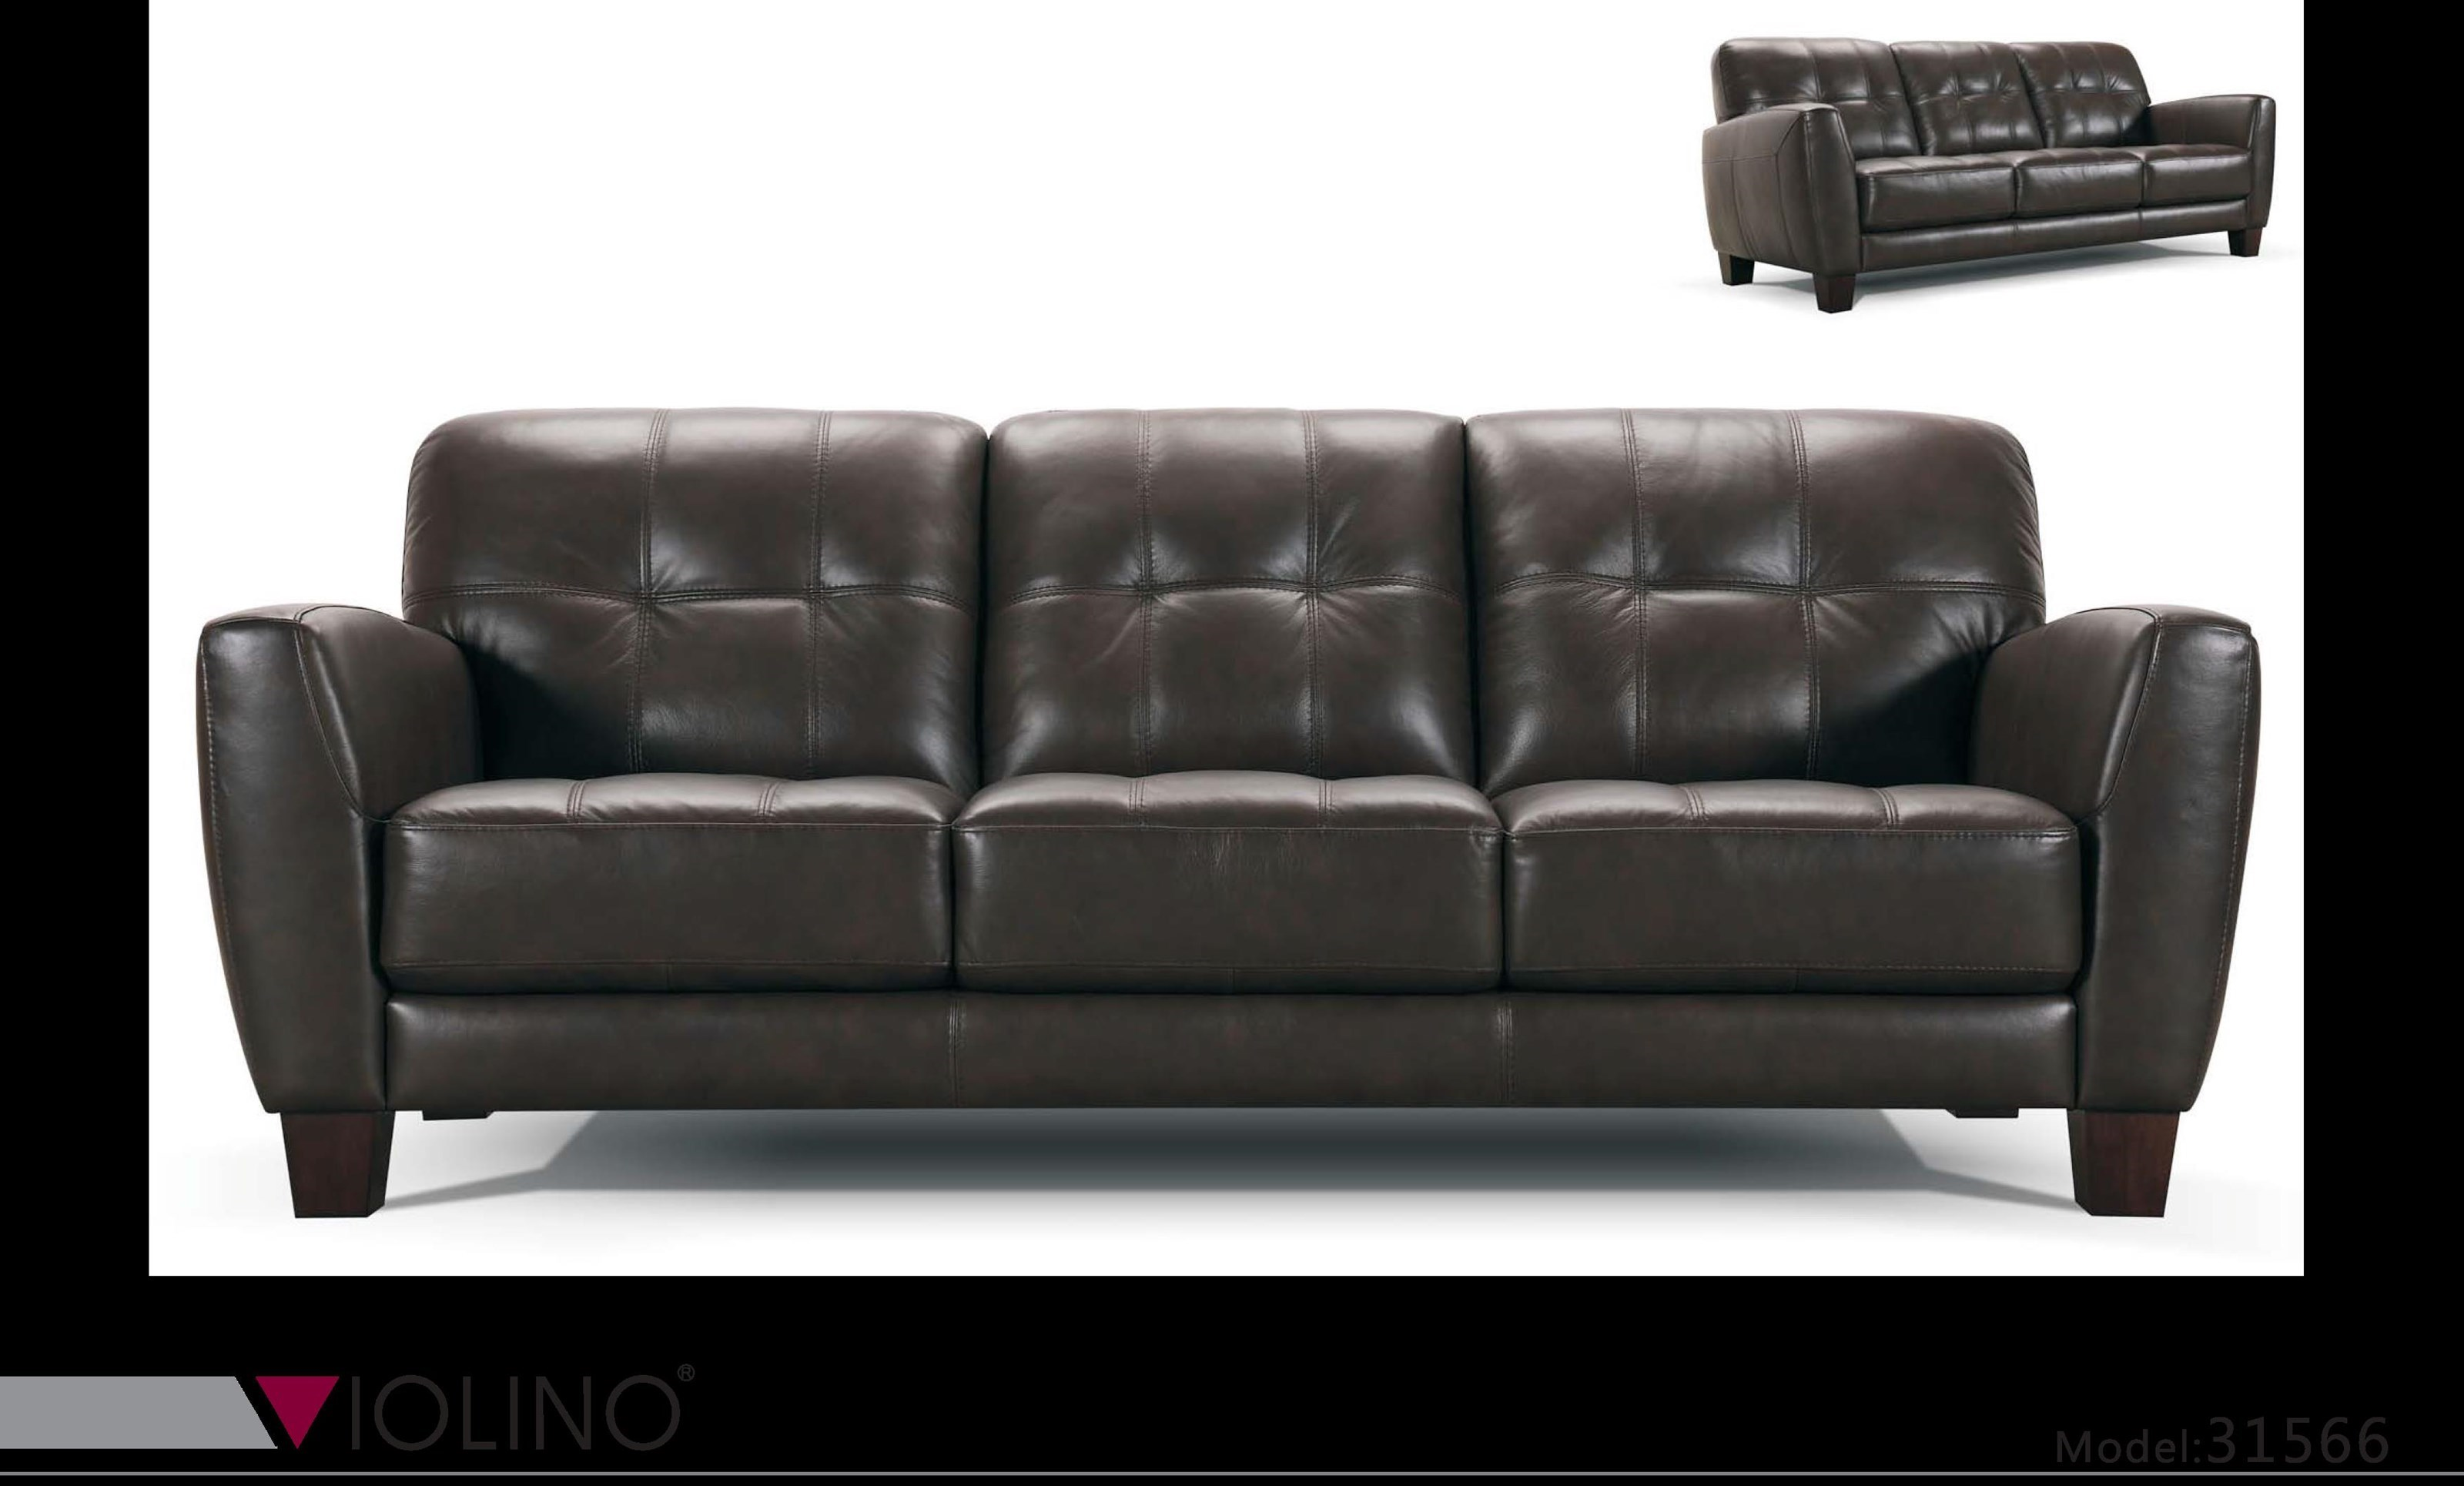 Violino 31566Tufted Leather Sofa